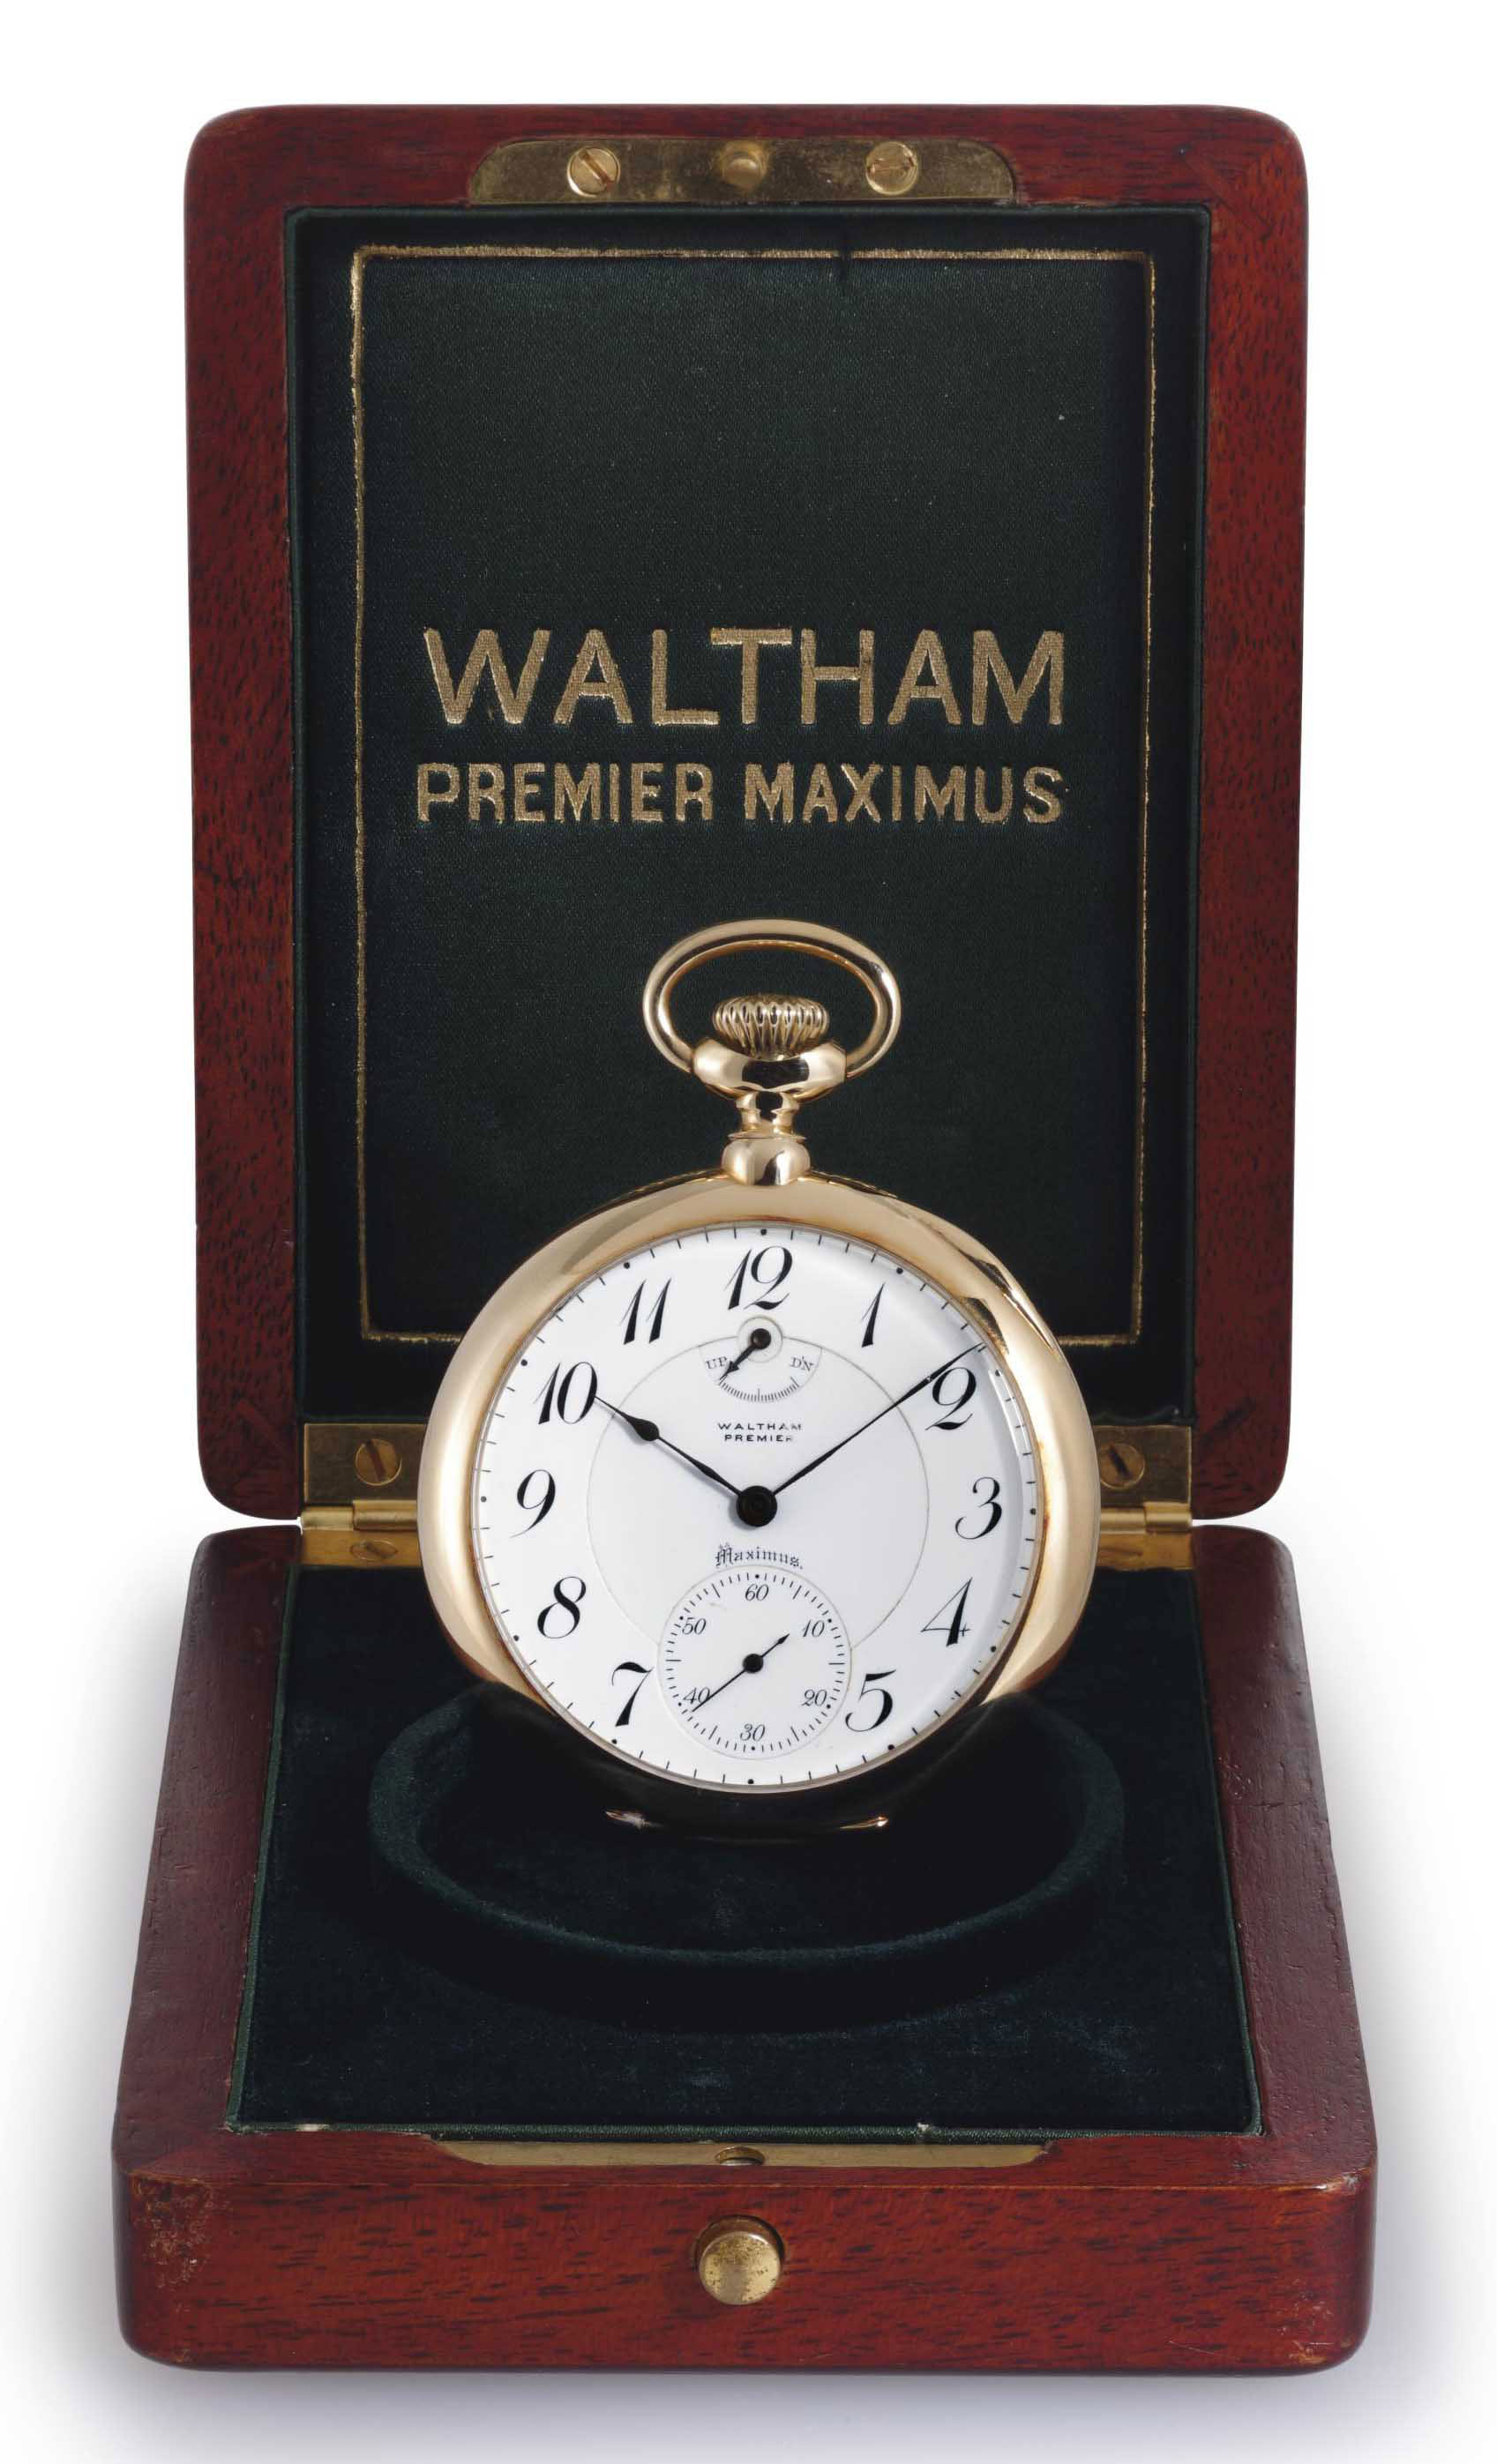 WALTHAM. A FINE AND RARE 18K GOLD OPENFACE KEYLESS LEVER POCKET WATCH WITH UP-AND-DOWN AND ORIGINAL BOX